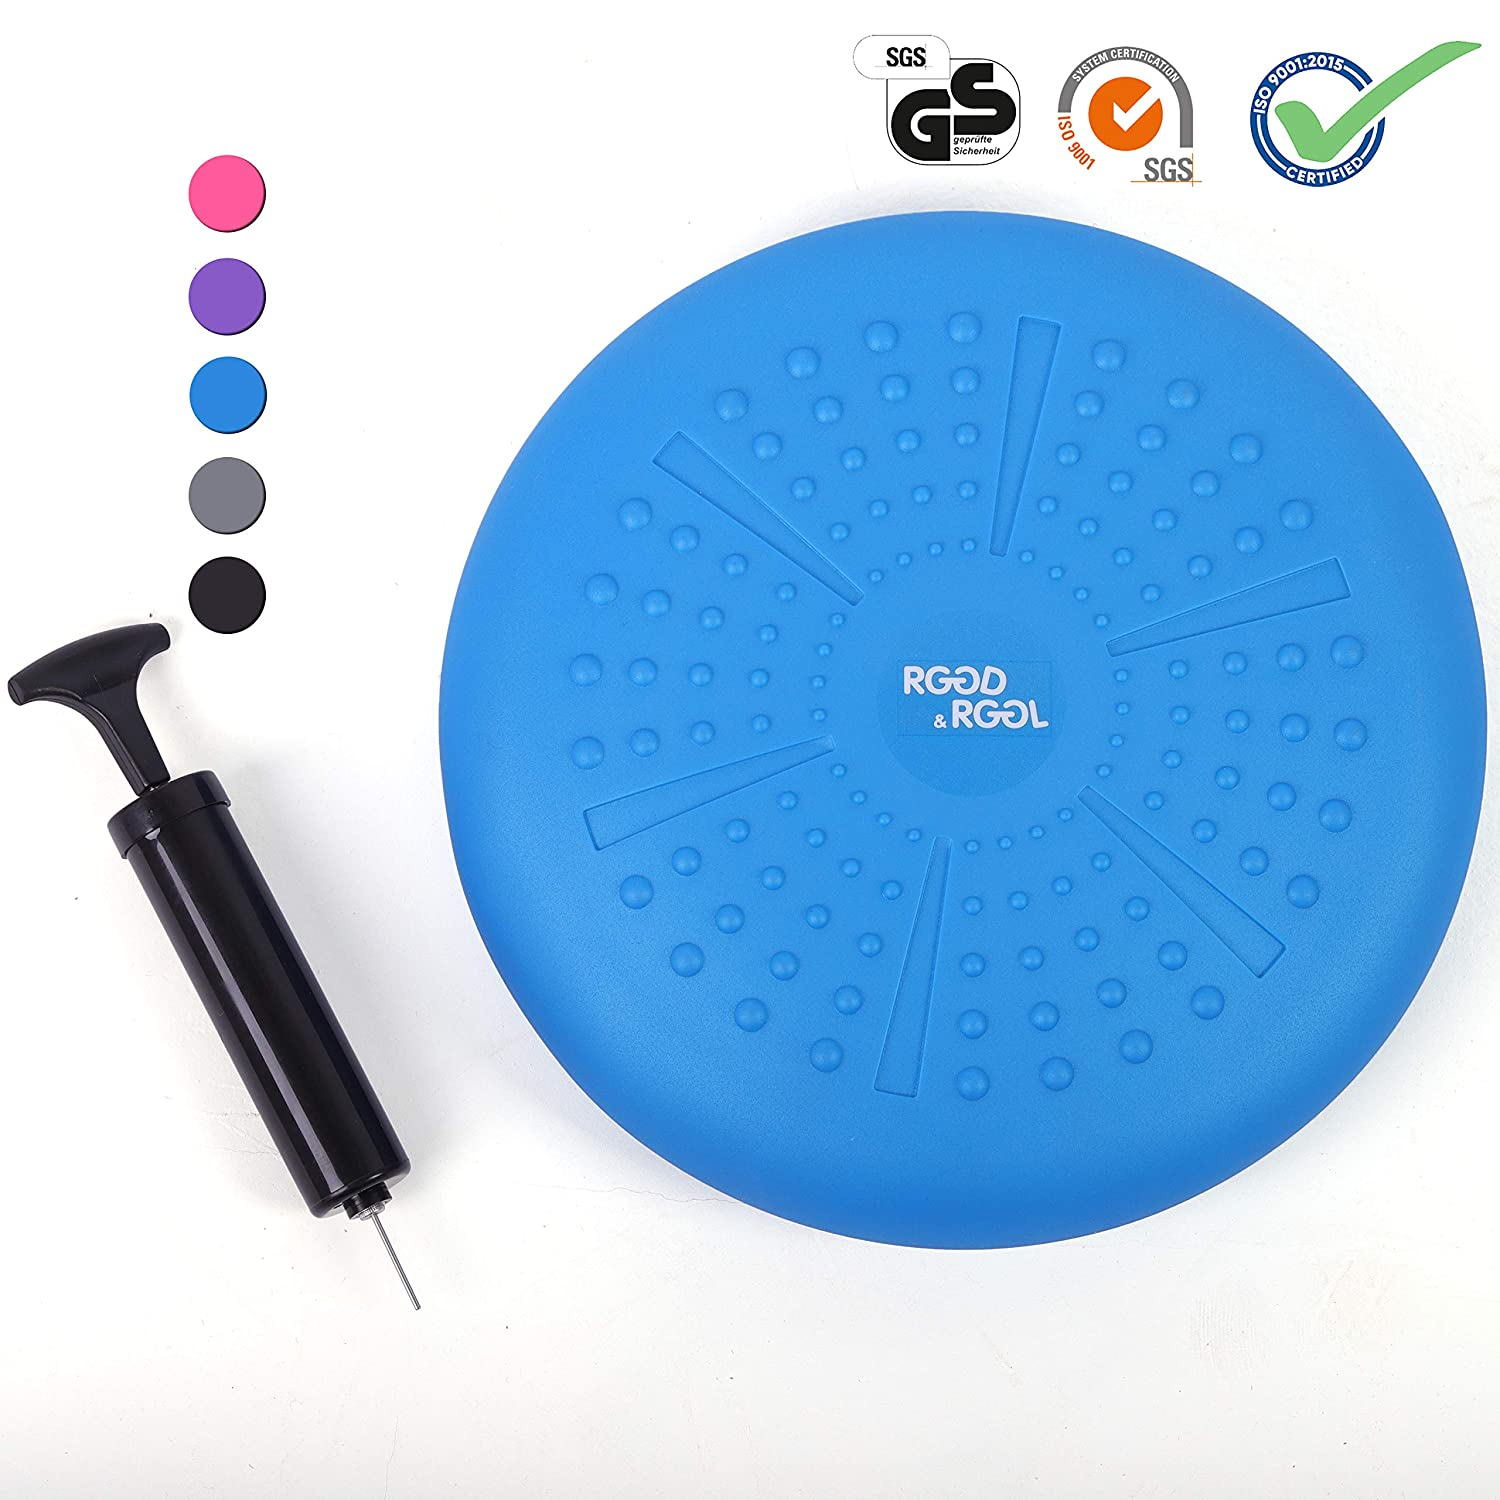 Extra Thick Balance Disc with Pump,Kids Wiggle Seat,Sensory Cushion for Classroom/&Office/&Home RGGD/&RGGL Wobble Cushion for Workout and Therapy,Support 442 lbs, 13/&14inch